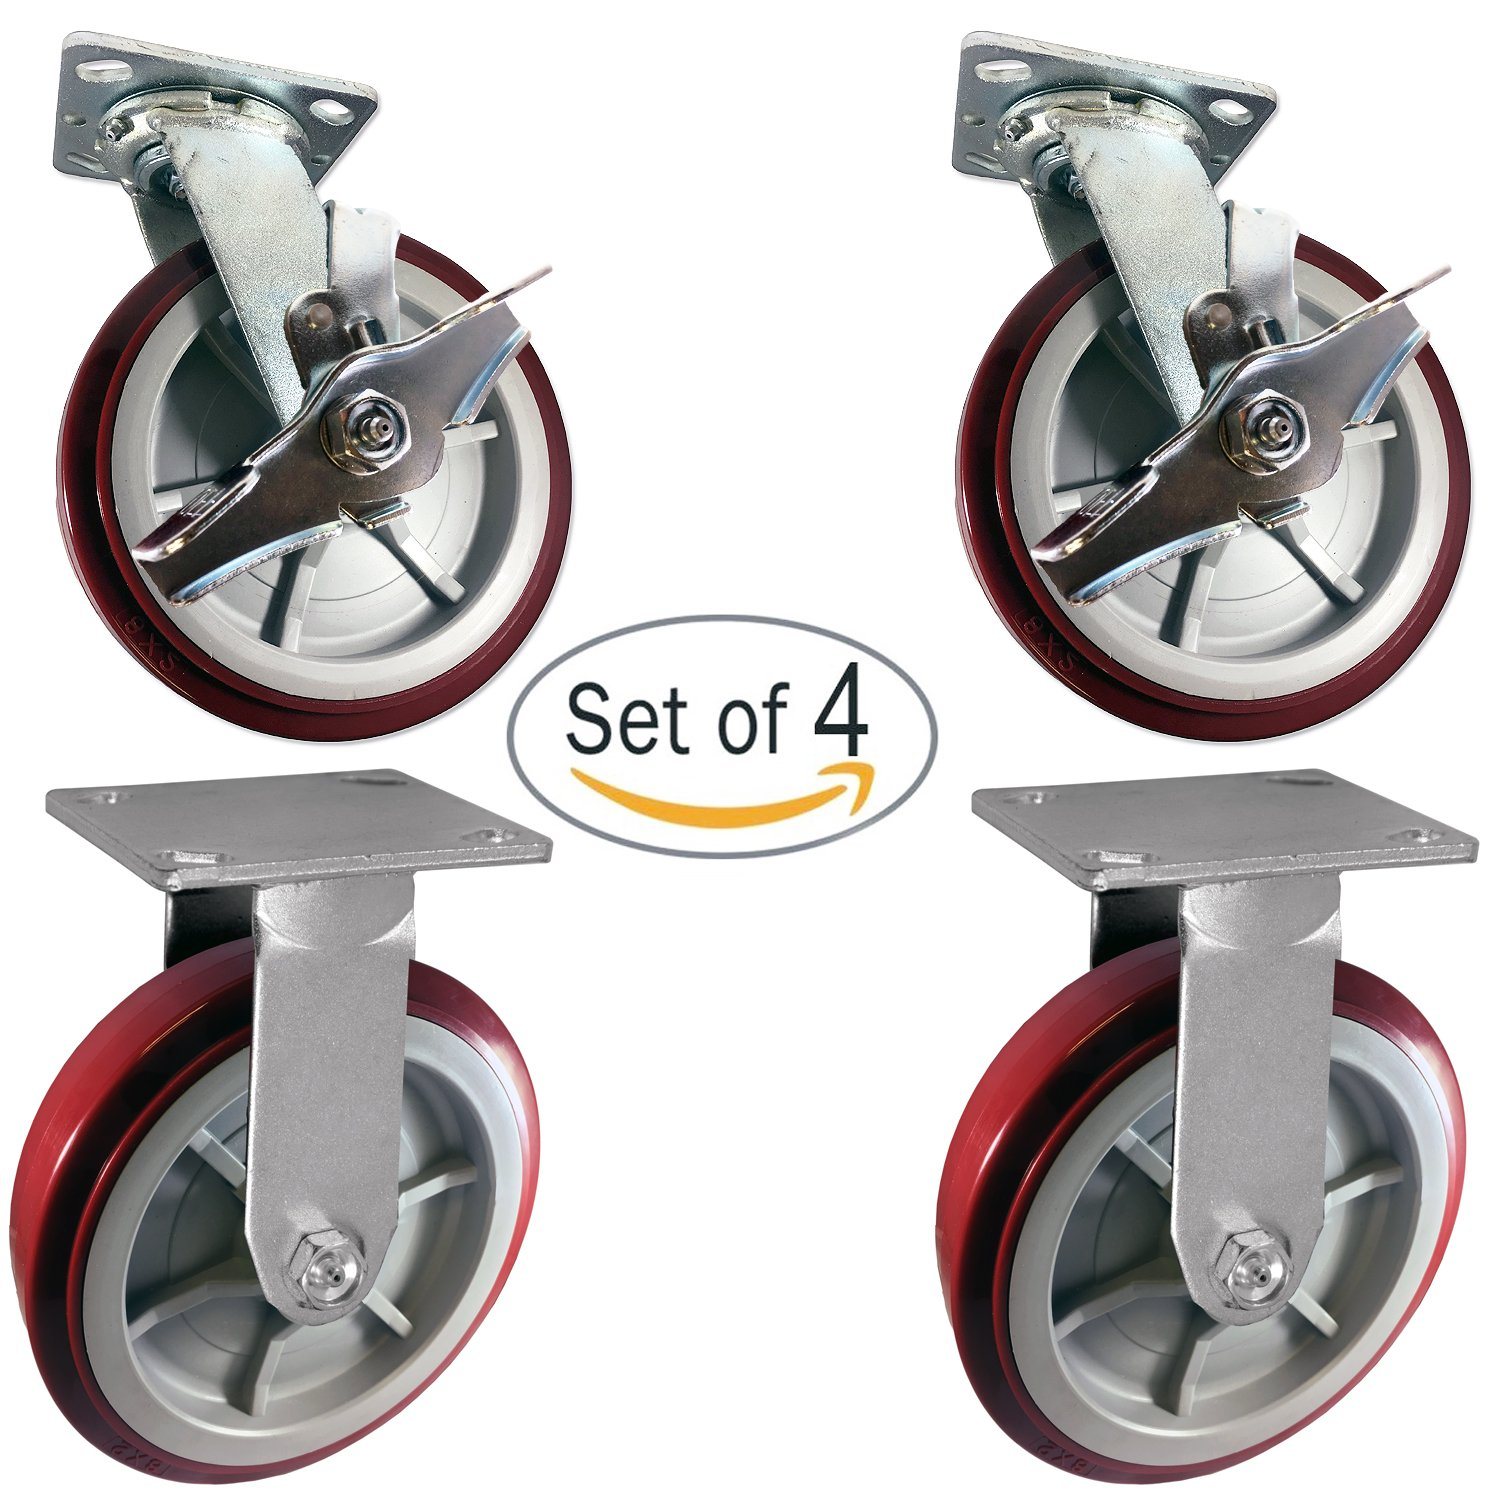 CasterHQ - Heavy Duty Polyurethane 2 Swivel Casters with Brake and 2 Rigid Fixed Casters, 8'' x 2'' Size (Pack of 4) - Tool Box by CasterHQ